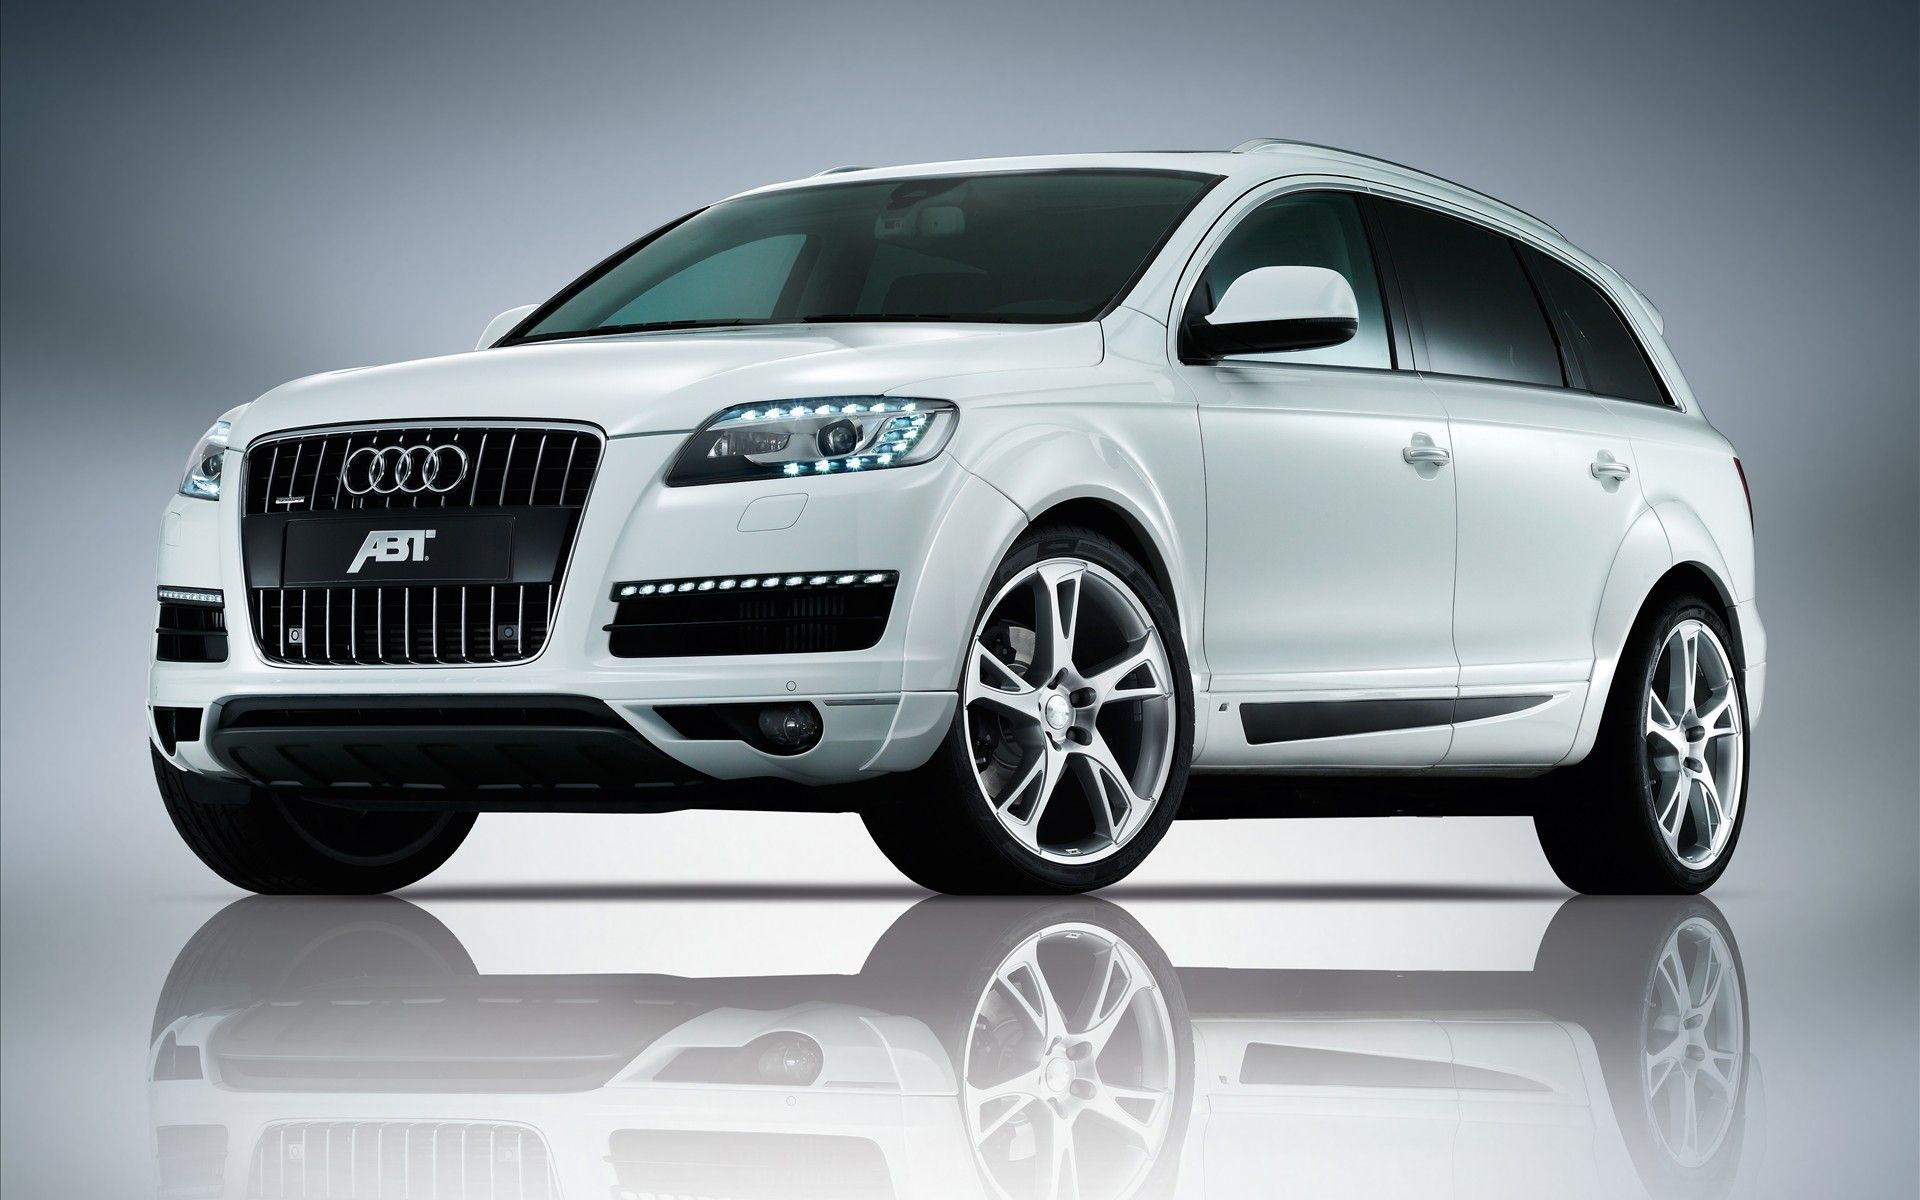 Awesome Amazing Audi Suv Australia Audi Automotive Design - Audi suv cars